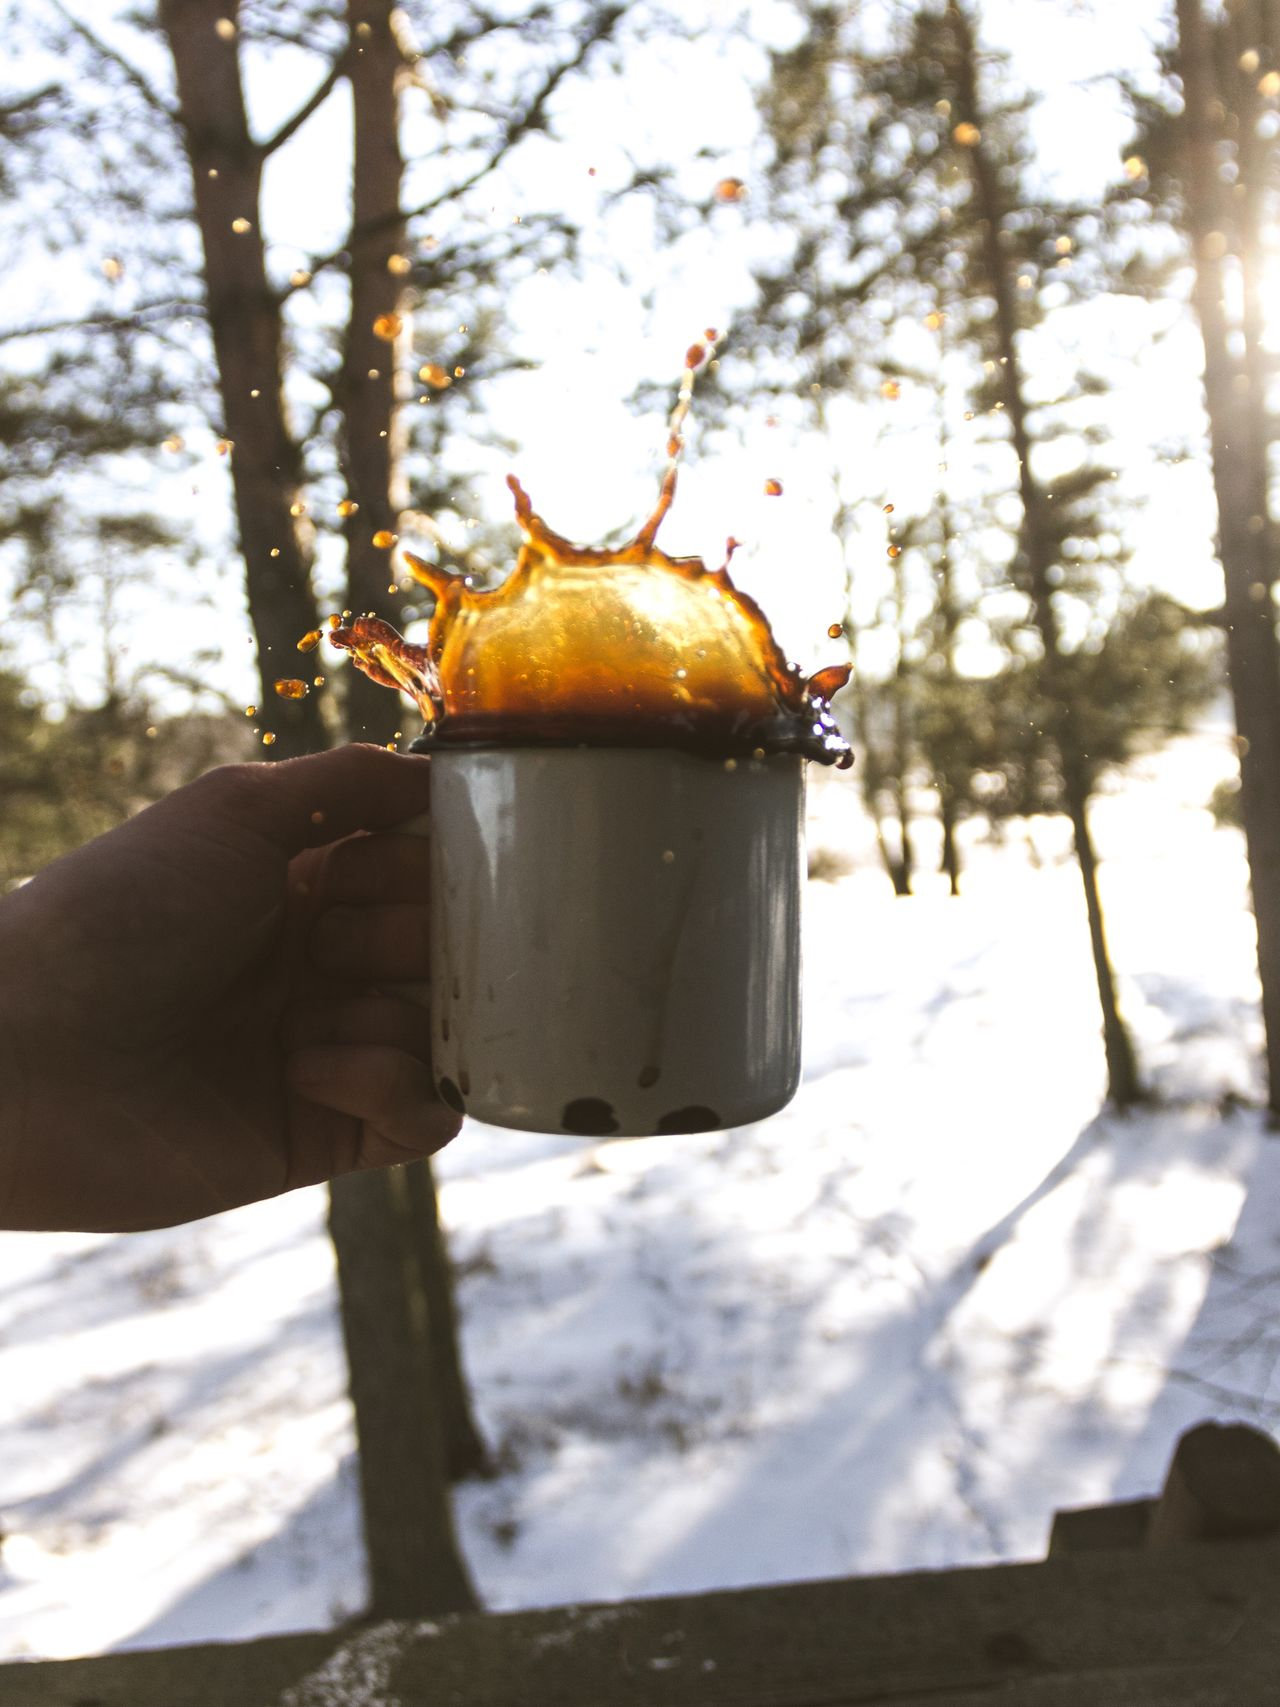 Tree Human Hand Holding Cold Temperature Human Body Part Real People One Person Focus On Foreground Outdoors Day Nature Winter Snow Close-up Men Ice People Coffee Coffee Time Coffee Cup Splash Outdoor Adventure Adventure Club Folk